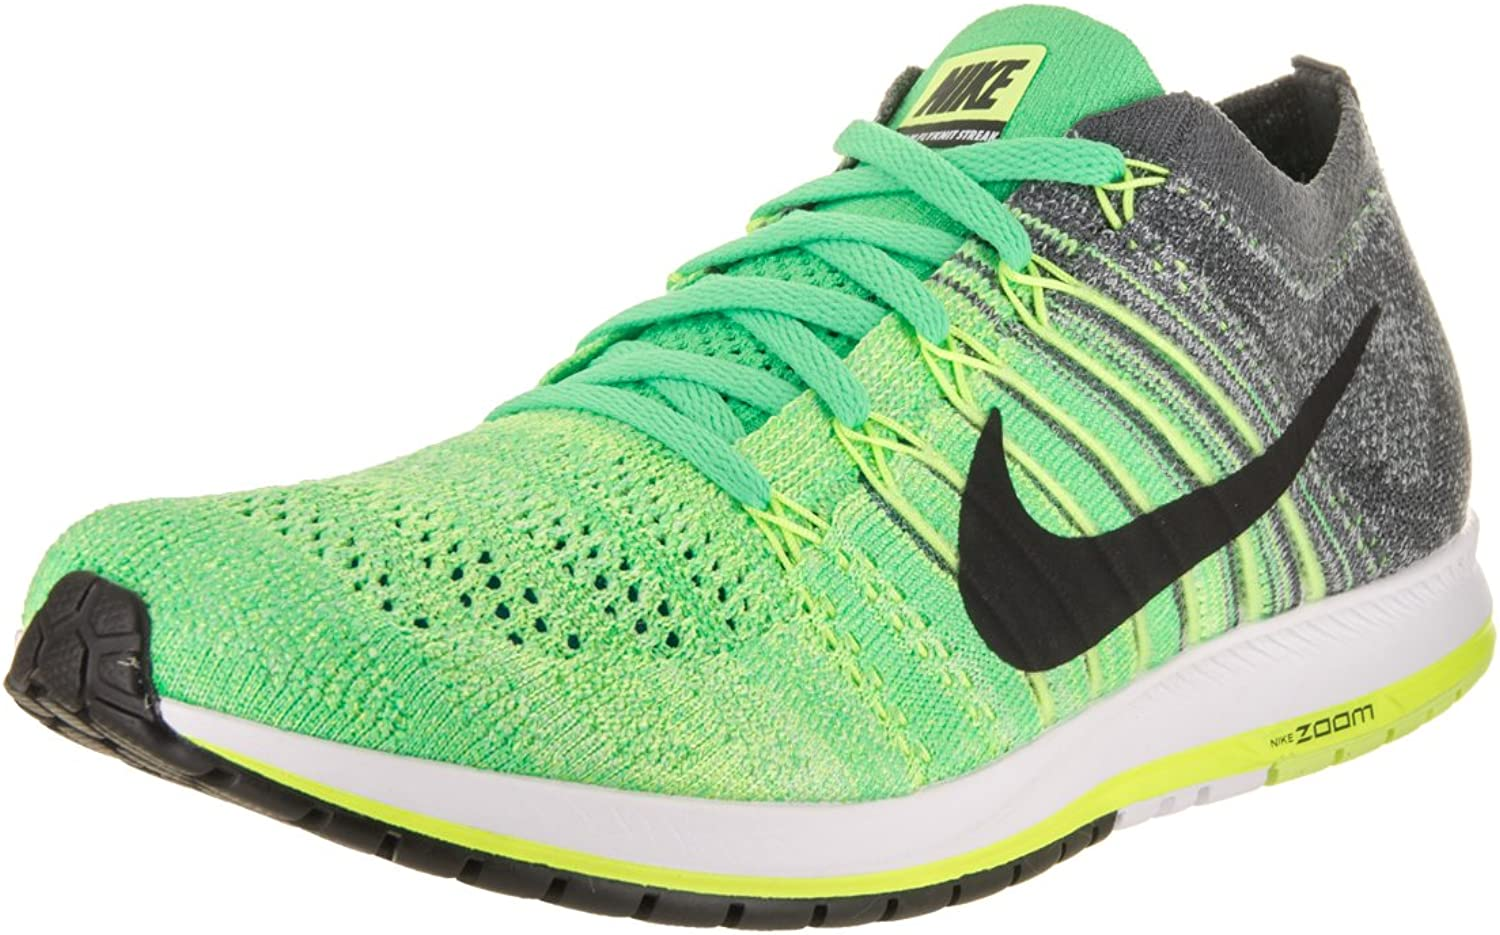 Nike Unisex Flyknit Streak Running shoes